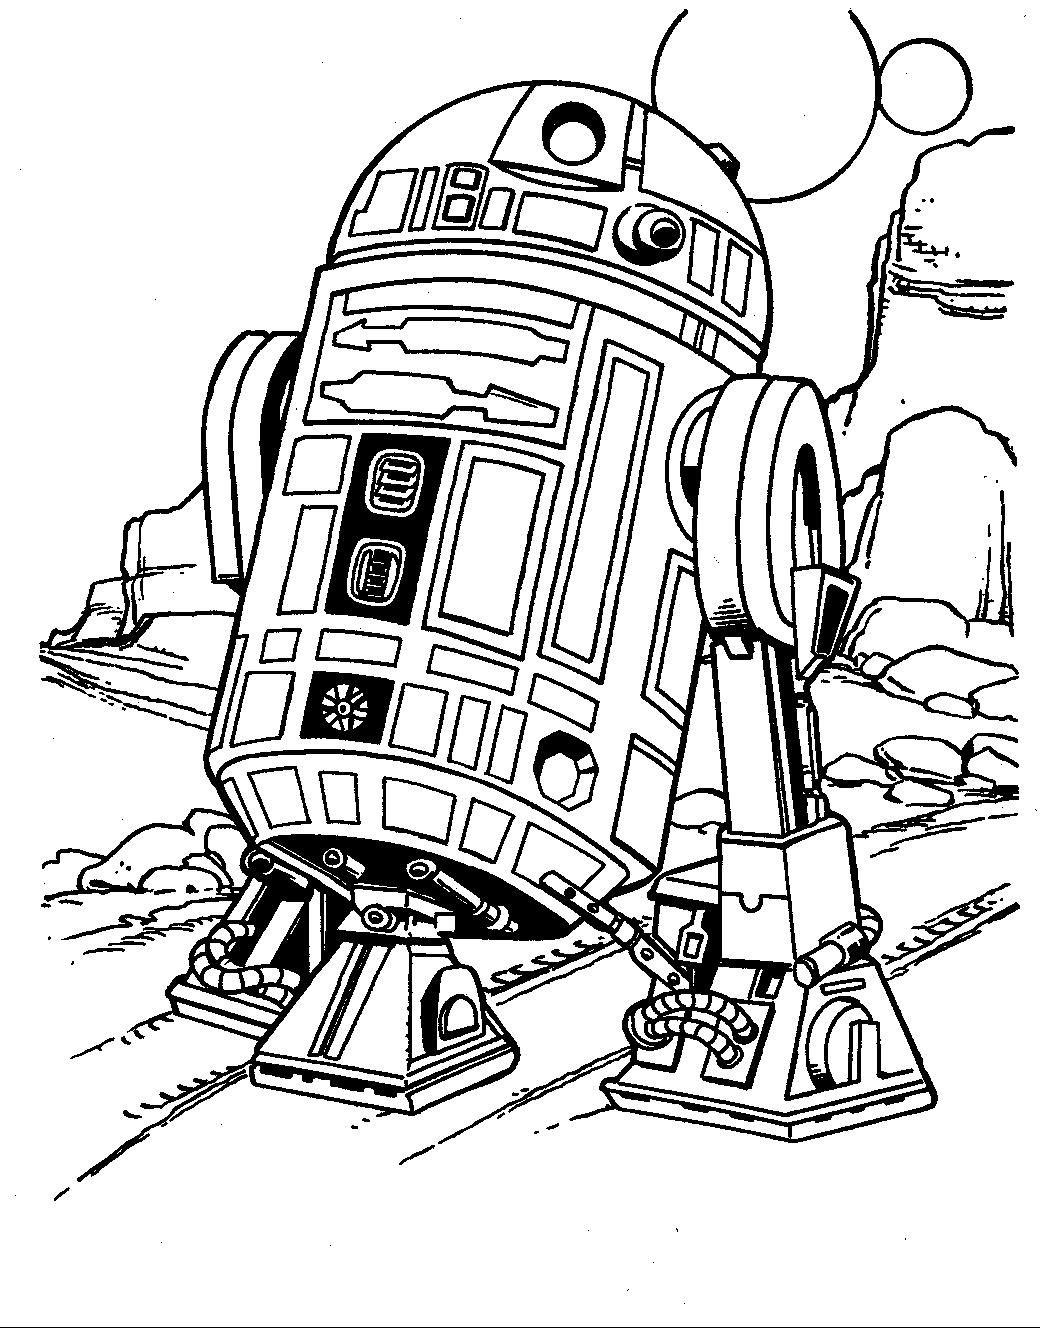 Hundreds Of Free Coloring Pages the Boys Pinterest Printable Of Coloring Pages Of Star Wars Free Coloring Pages Star Wars Printable